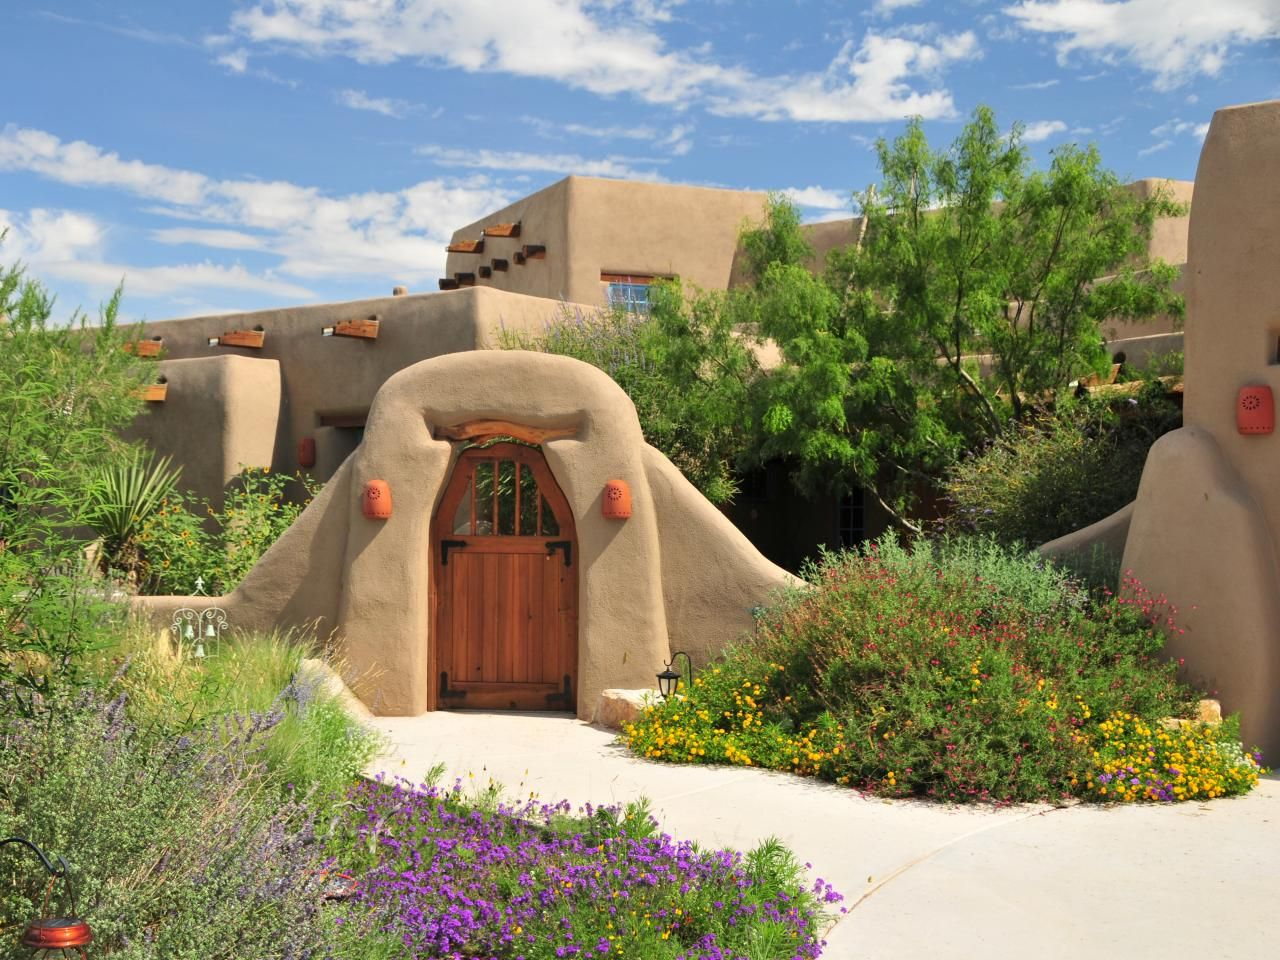 Adobe Home Design The Exterior Of This New Mexico Adobe Style Home Uses